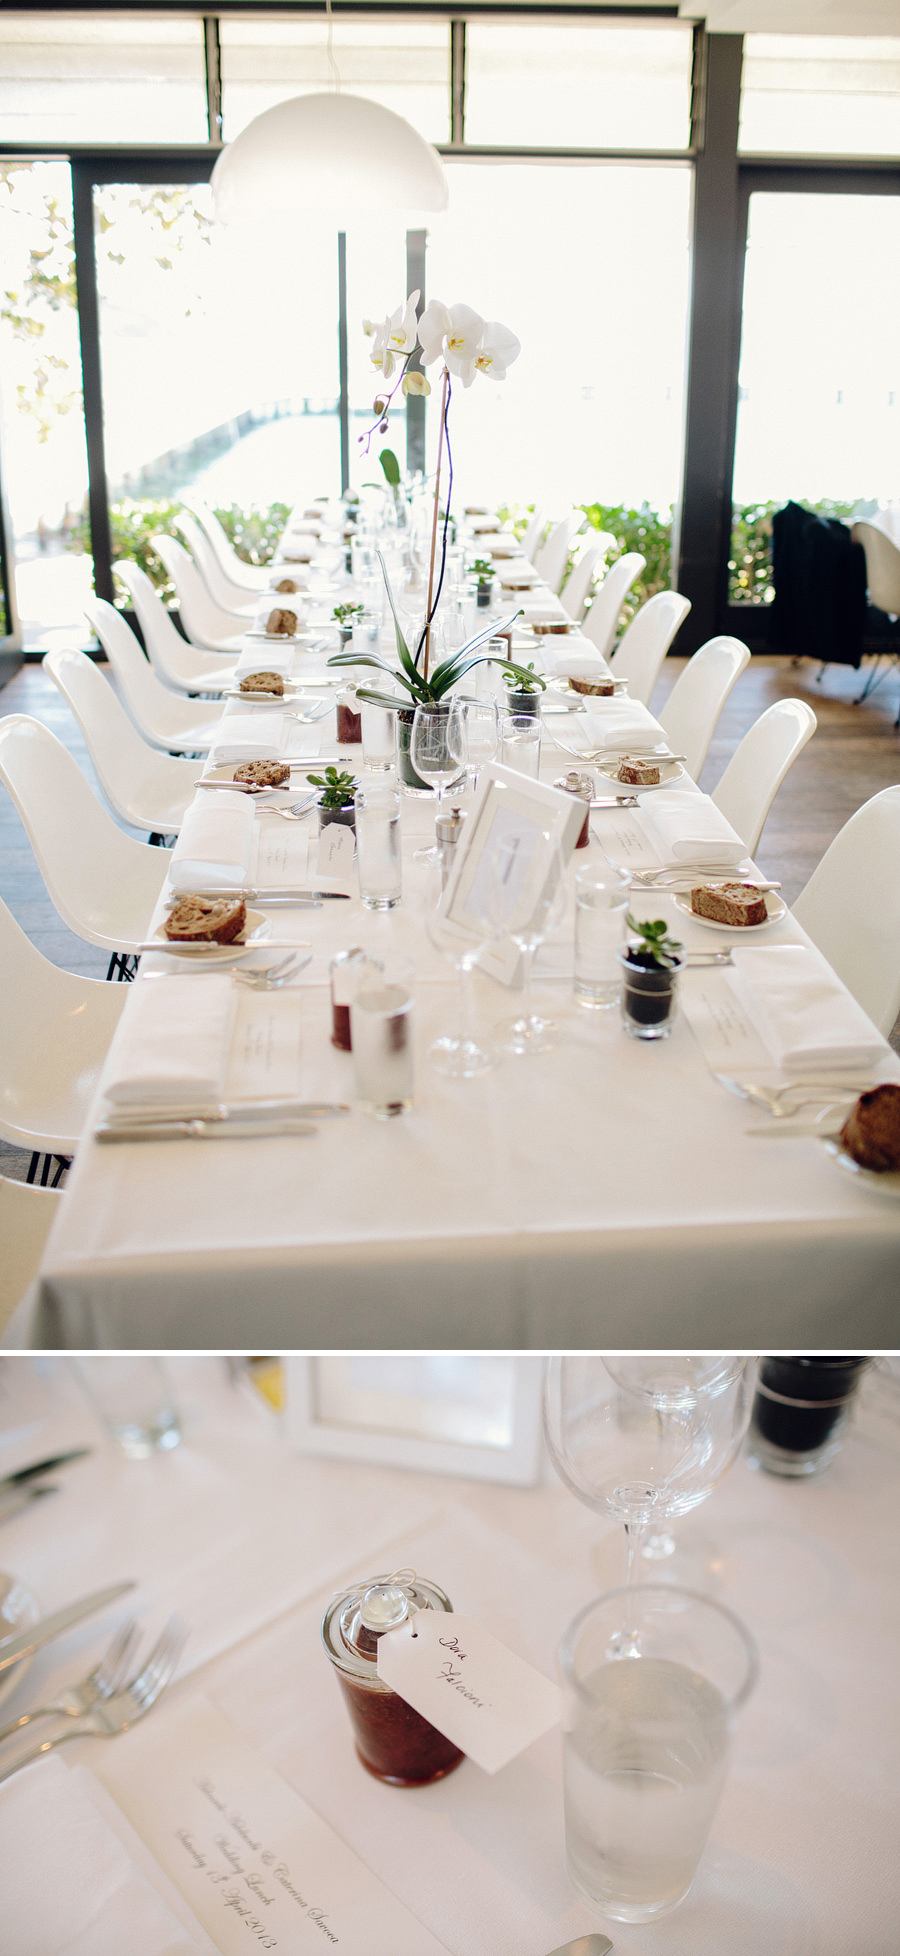 Public Dining Room Wedding Photographer: Reception details